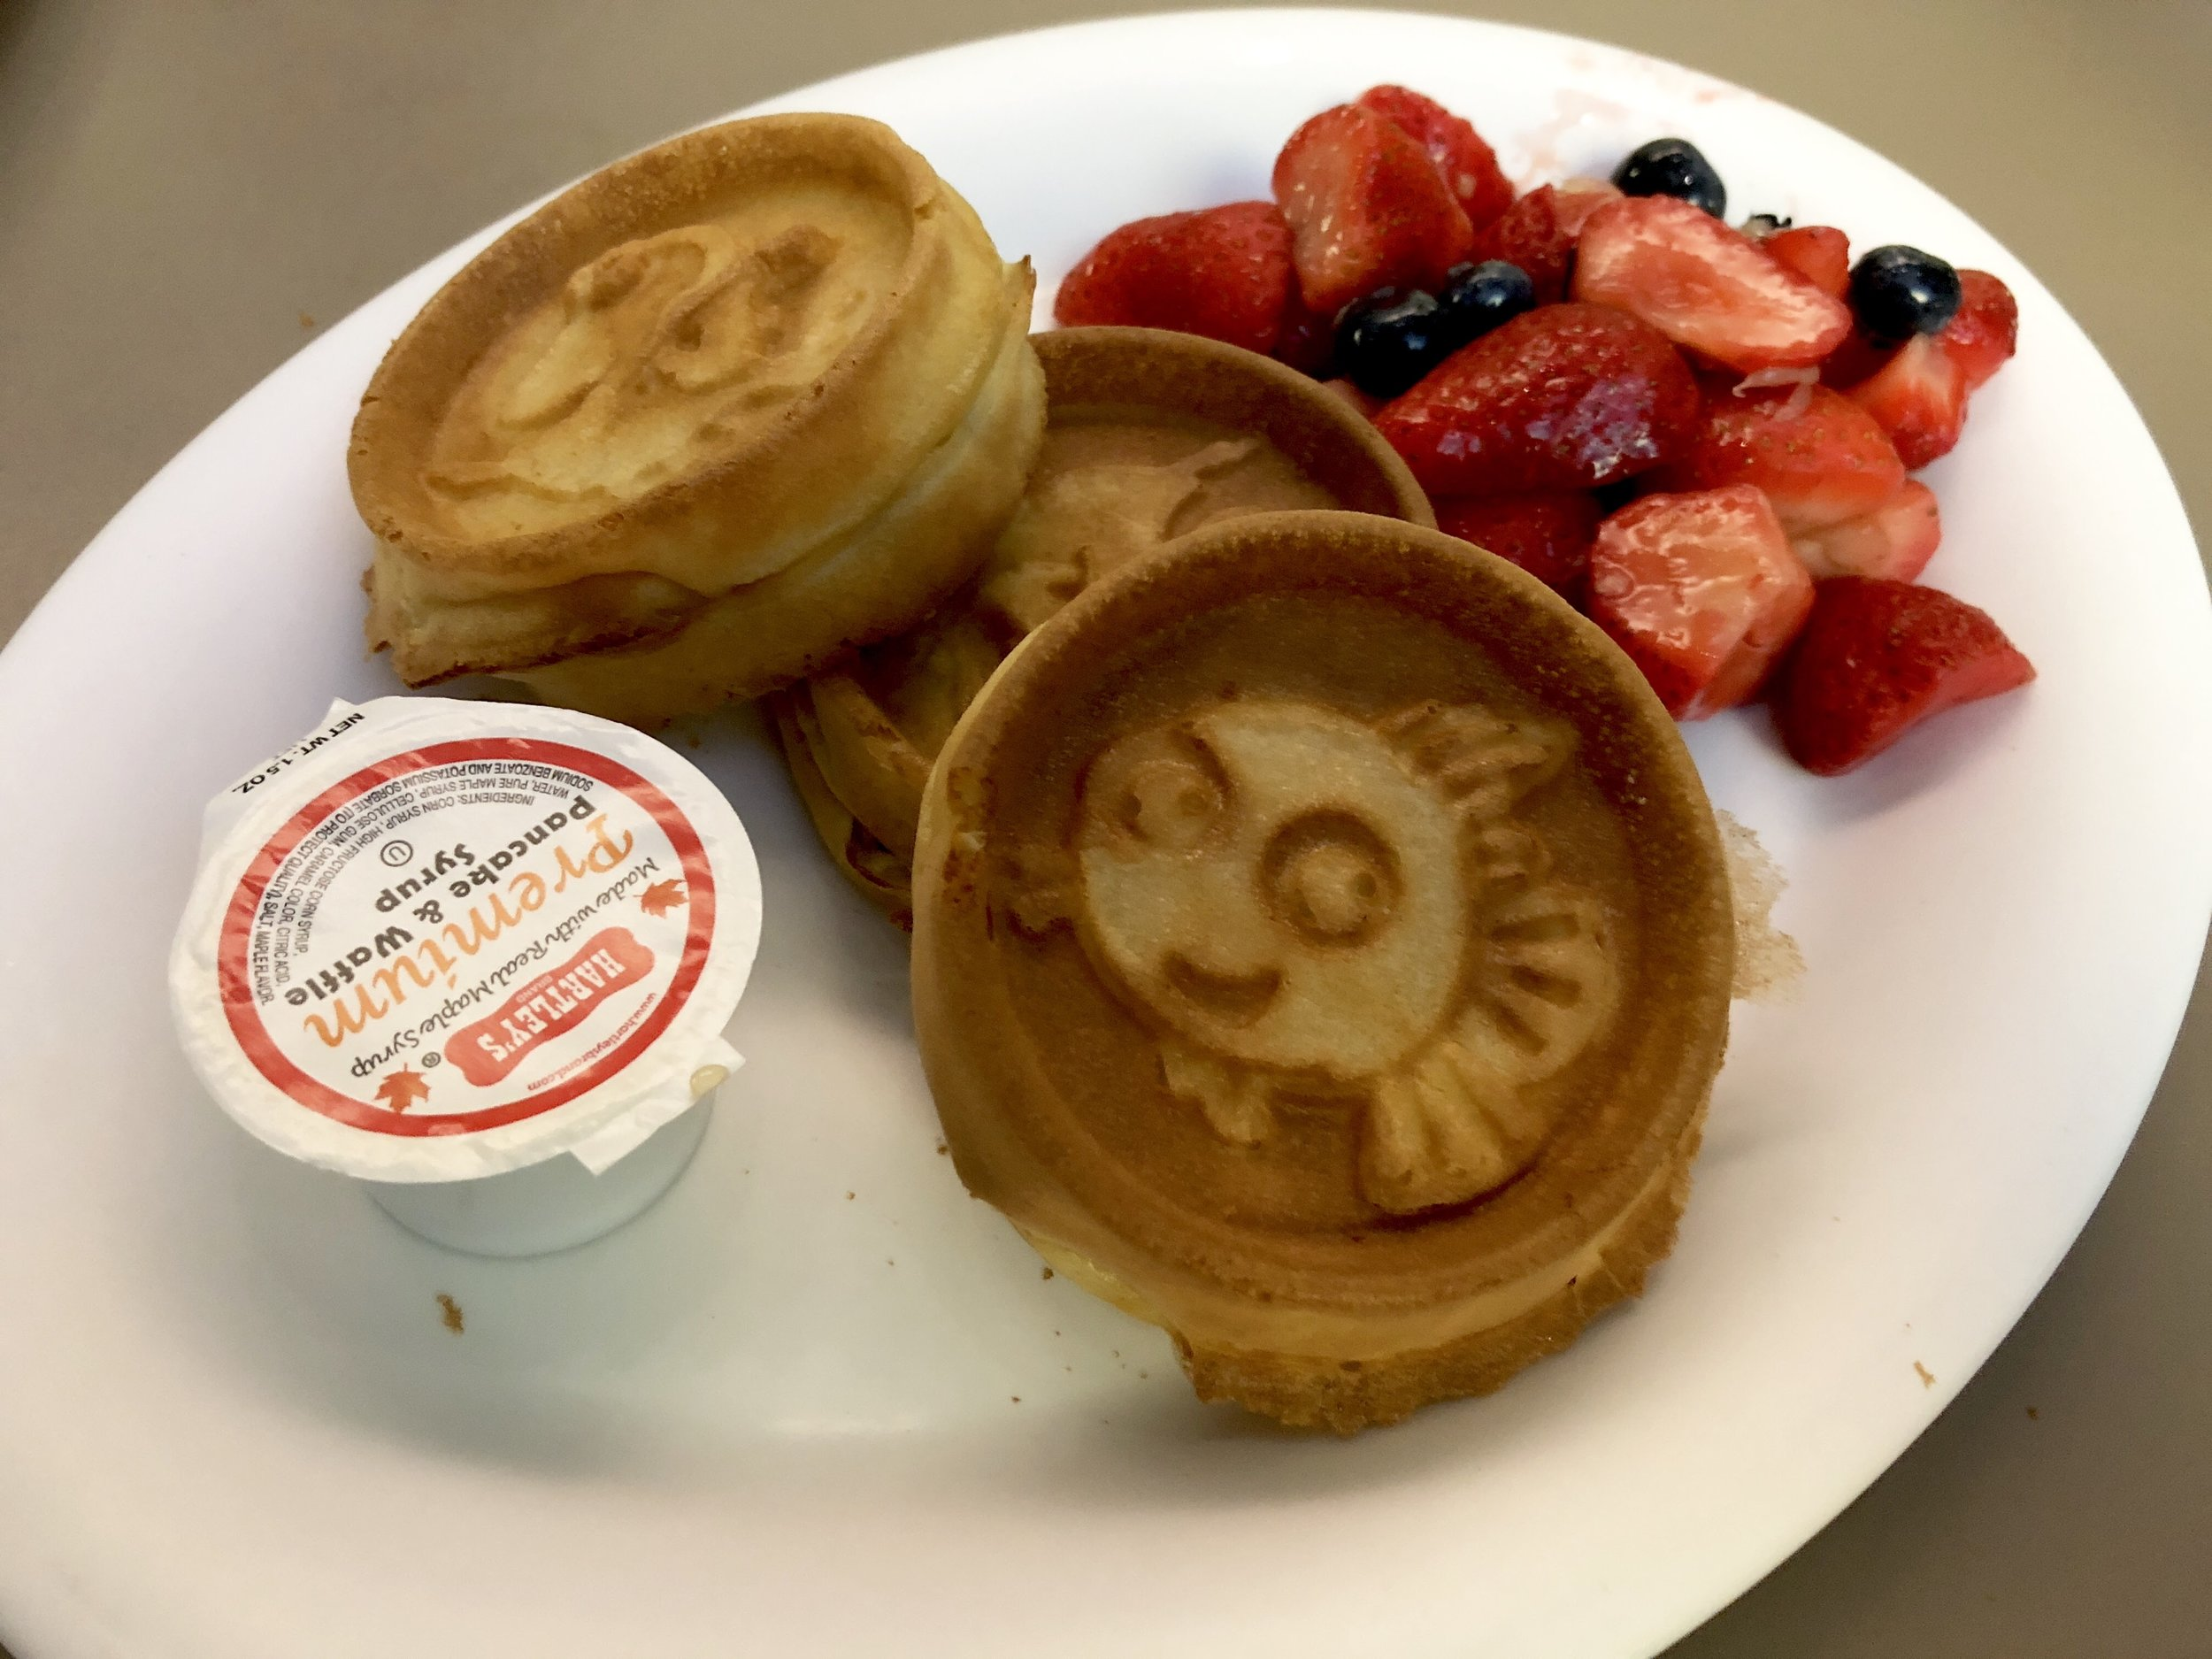 It's not a Disney breakfast without character waffles